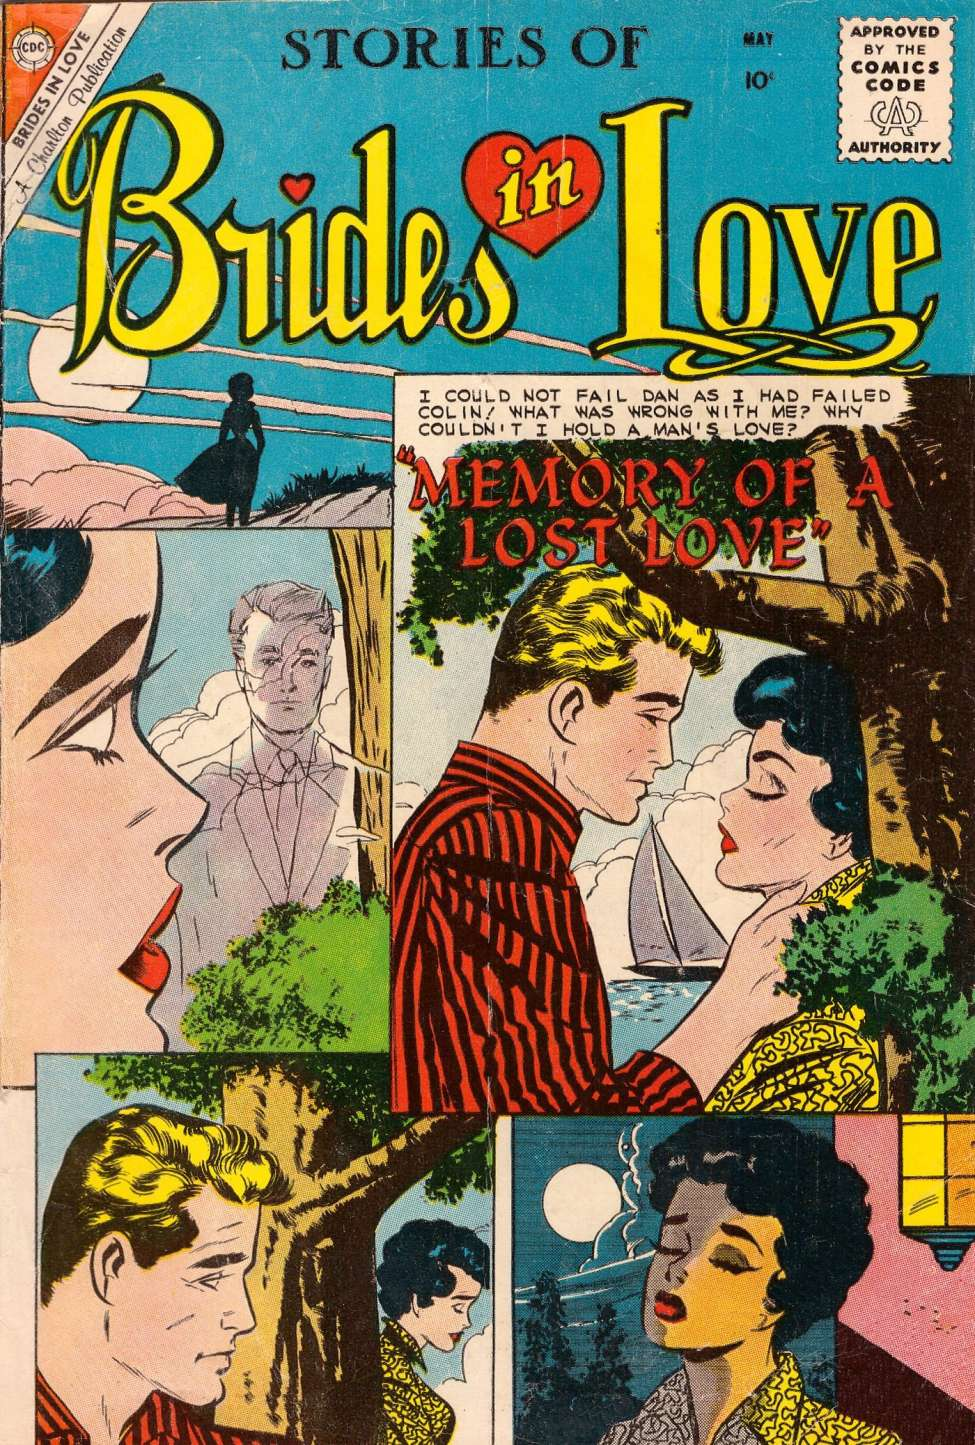 Comic Book Cover For Brides in Love #18